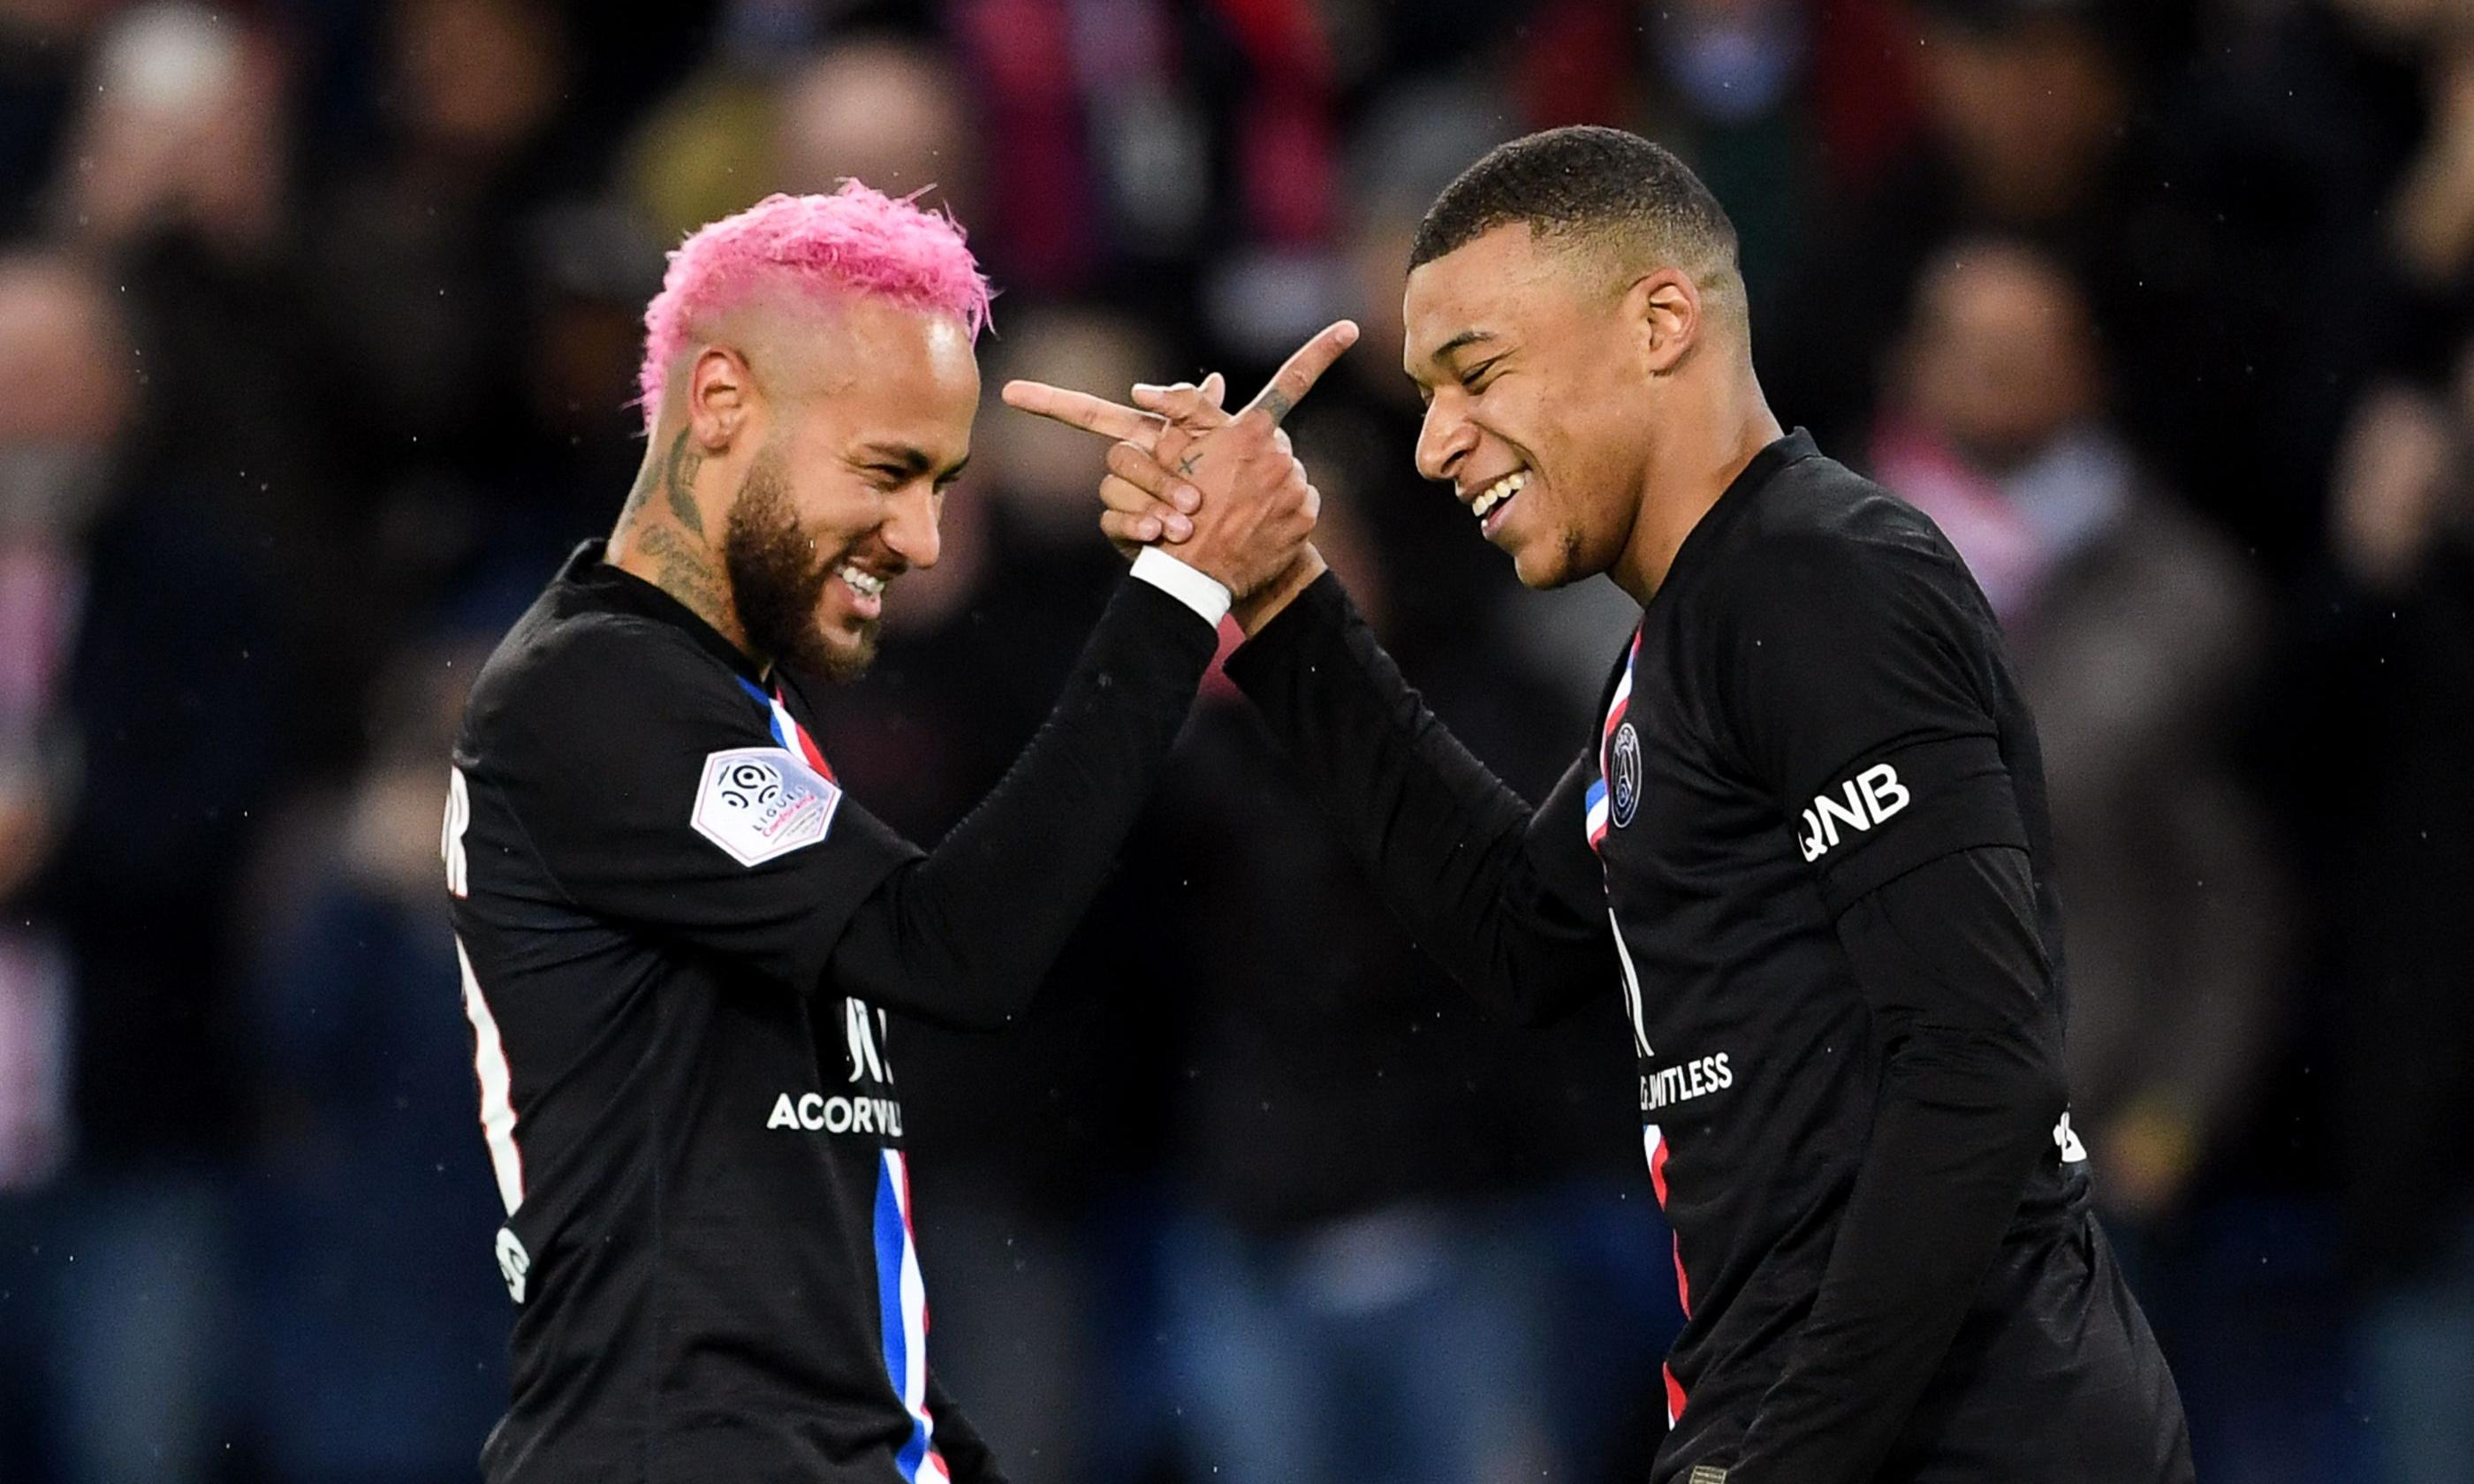 PSG are better placed than ever to satisfy European obsession